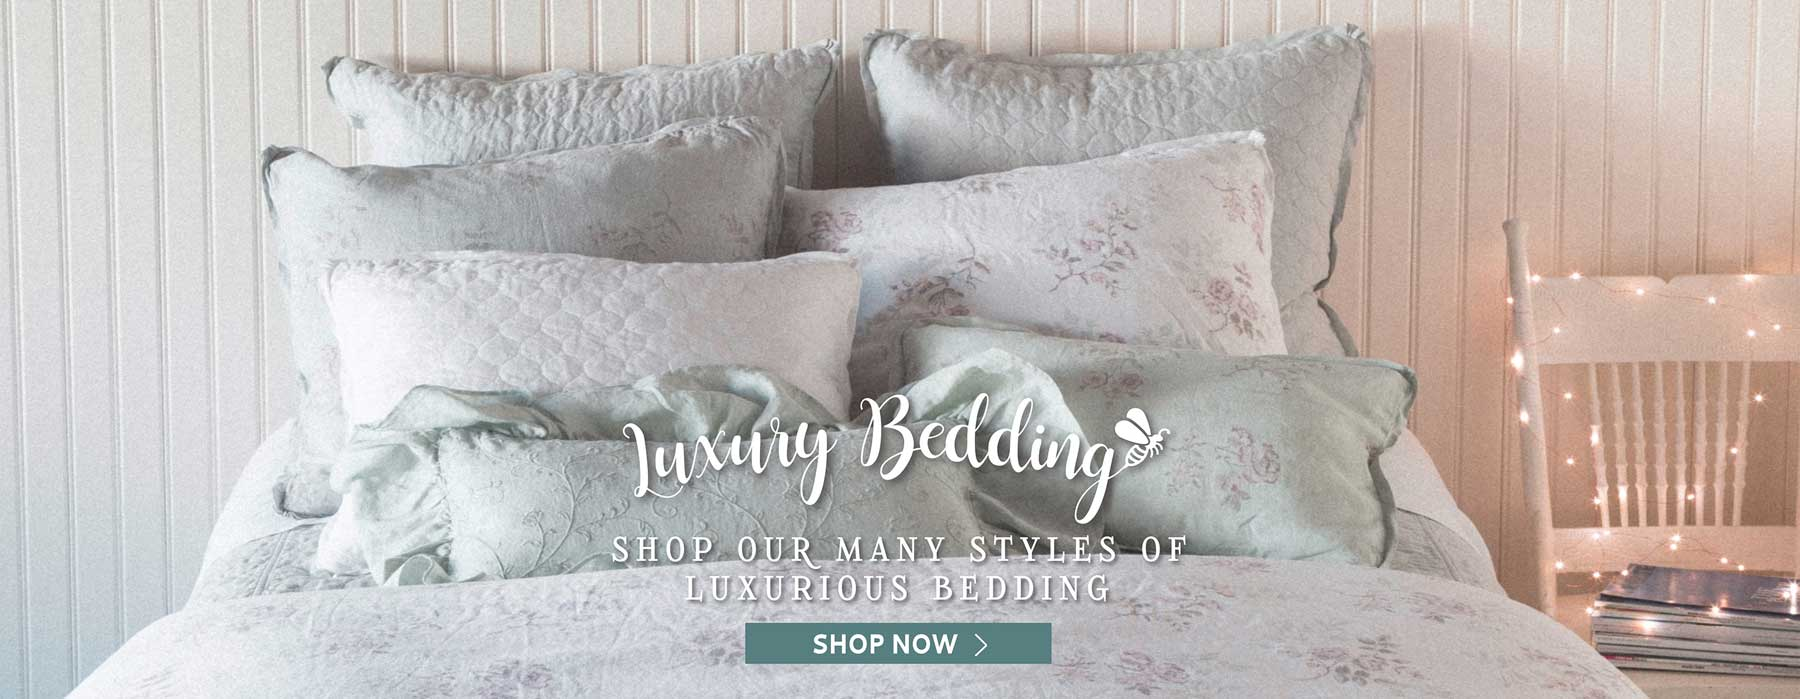 Luxury Bedding - Shop Our Many Styles of Luxurious Bedding